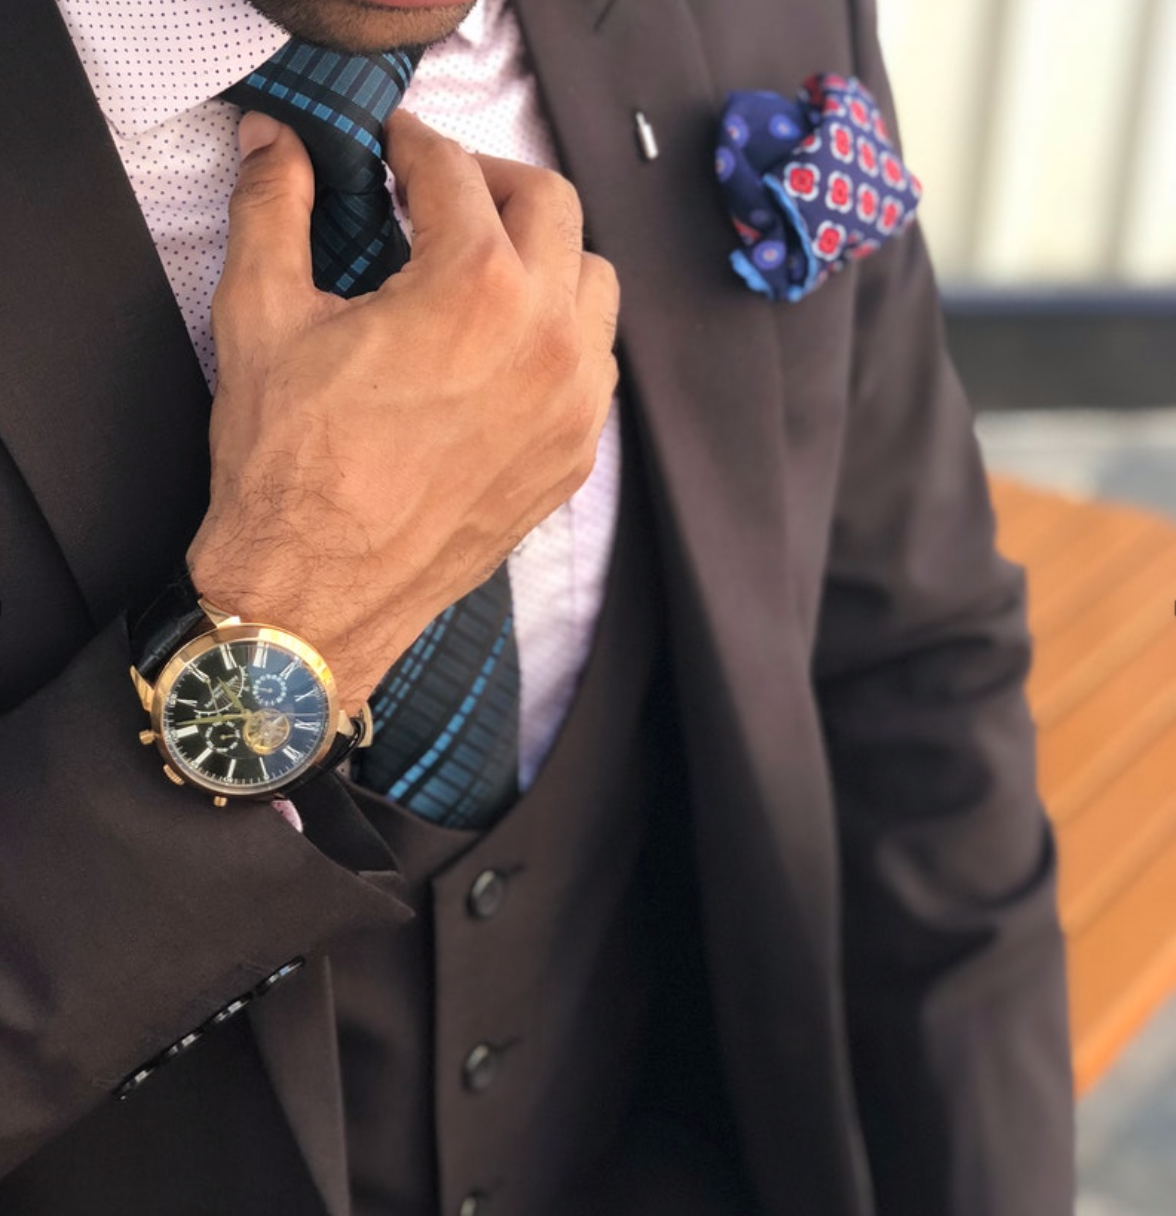 Top 5 Reasons Why Watches are So Important